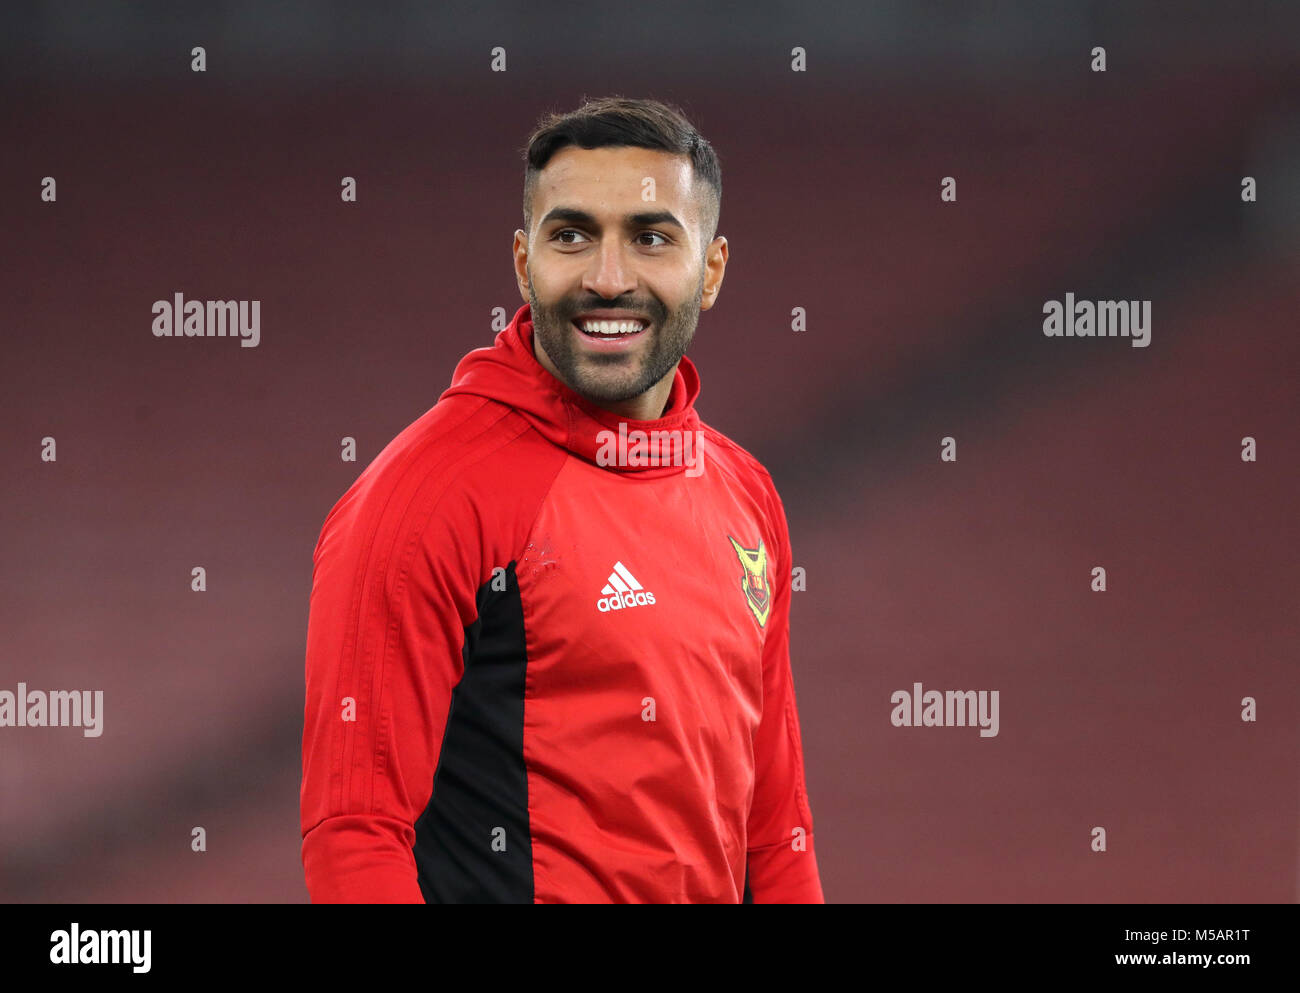 Ostersunds FK's Saman Ghoddos during the training session at the Emirates Stadium, London. Stock Photo